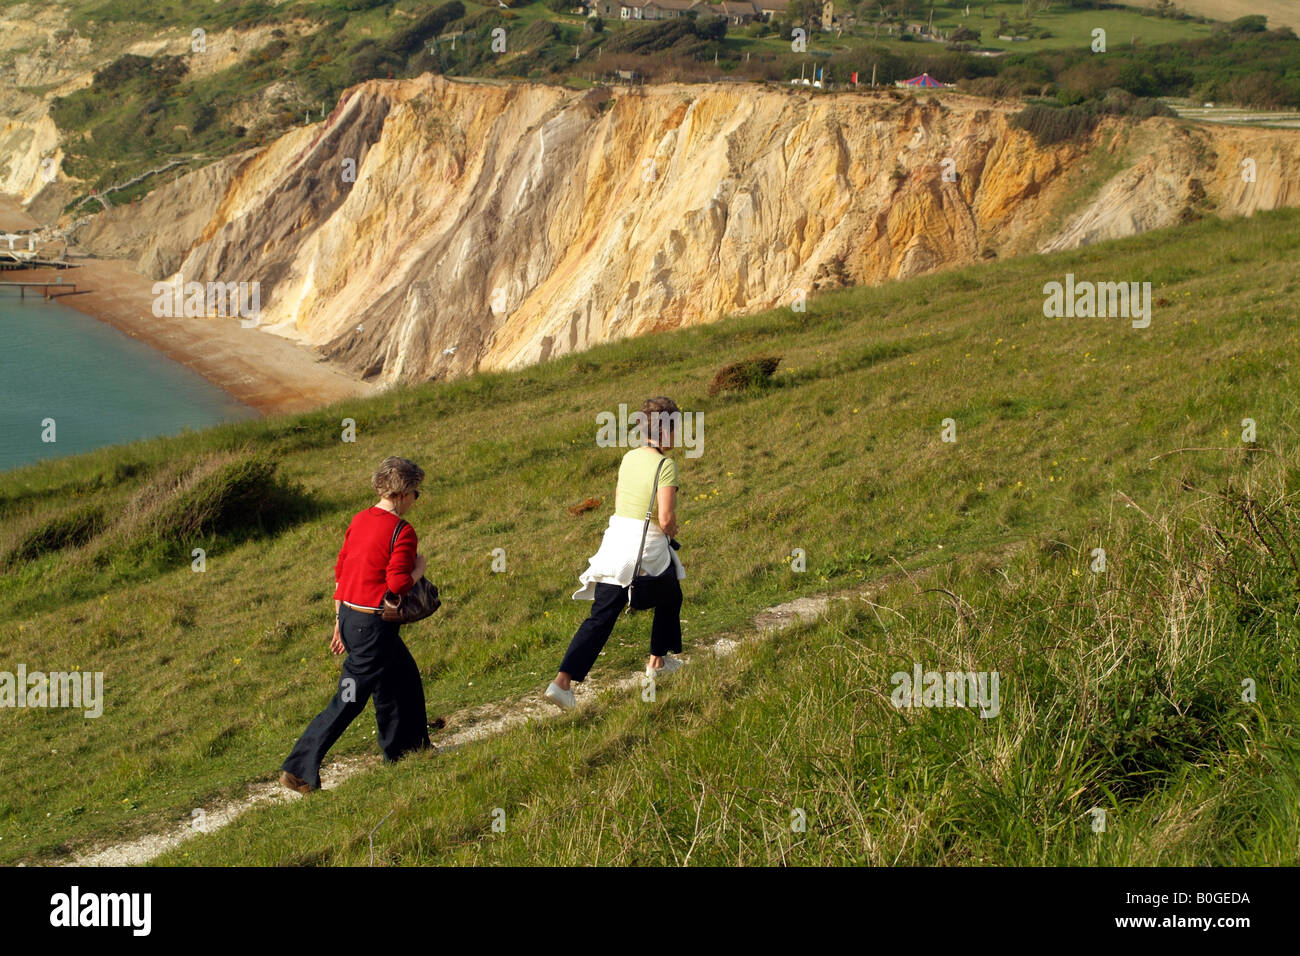 Tourists Walking on Coastal Path and the Coloured Sand Cliffs at Alum Bay Isle of Wight England Stock Photo